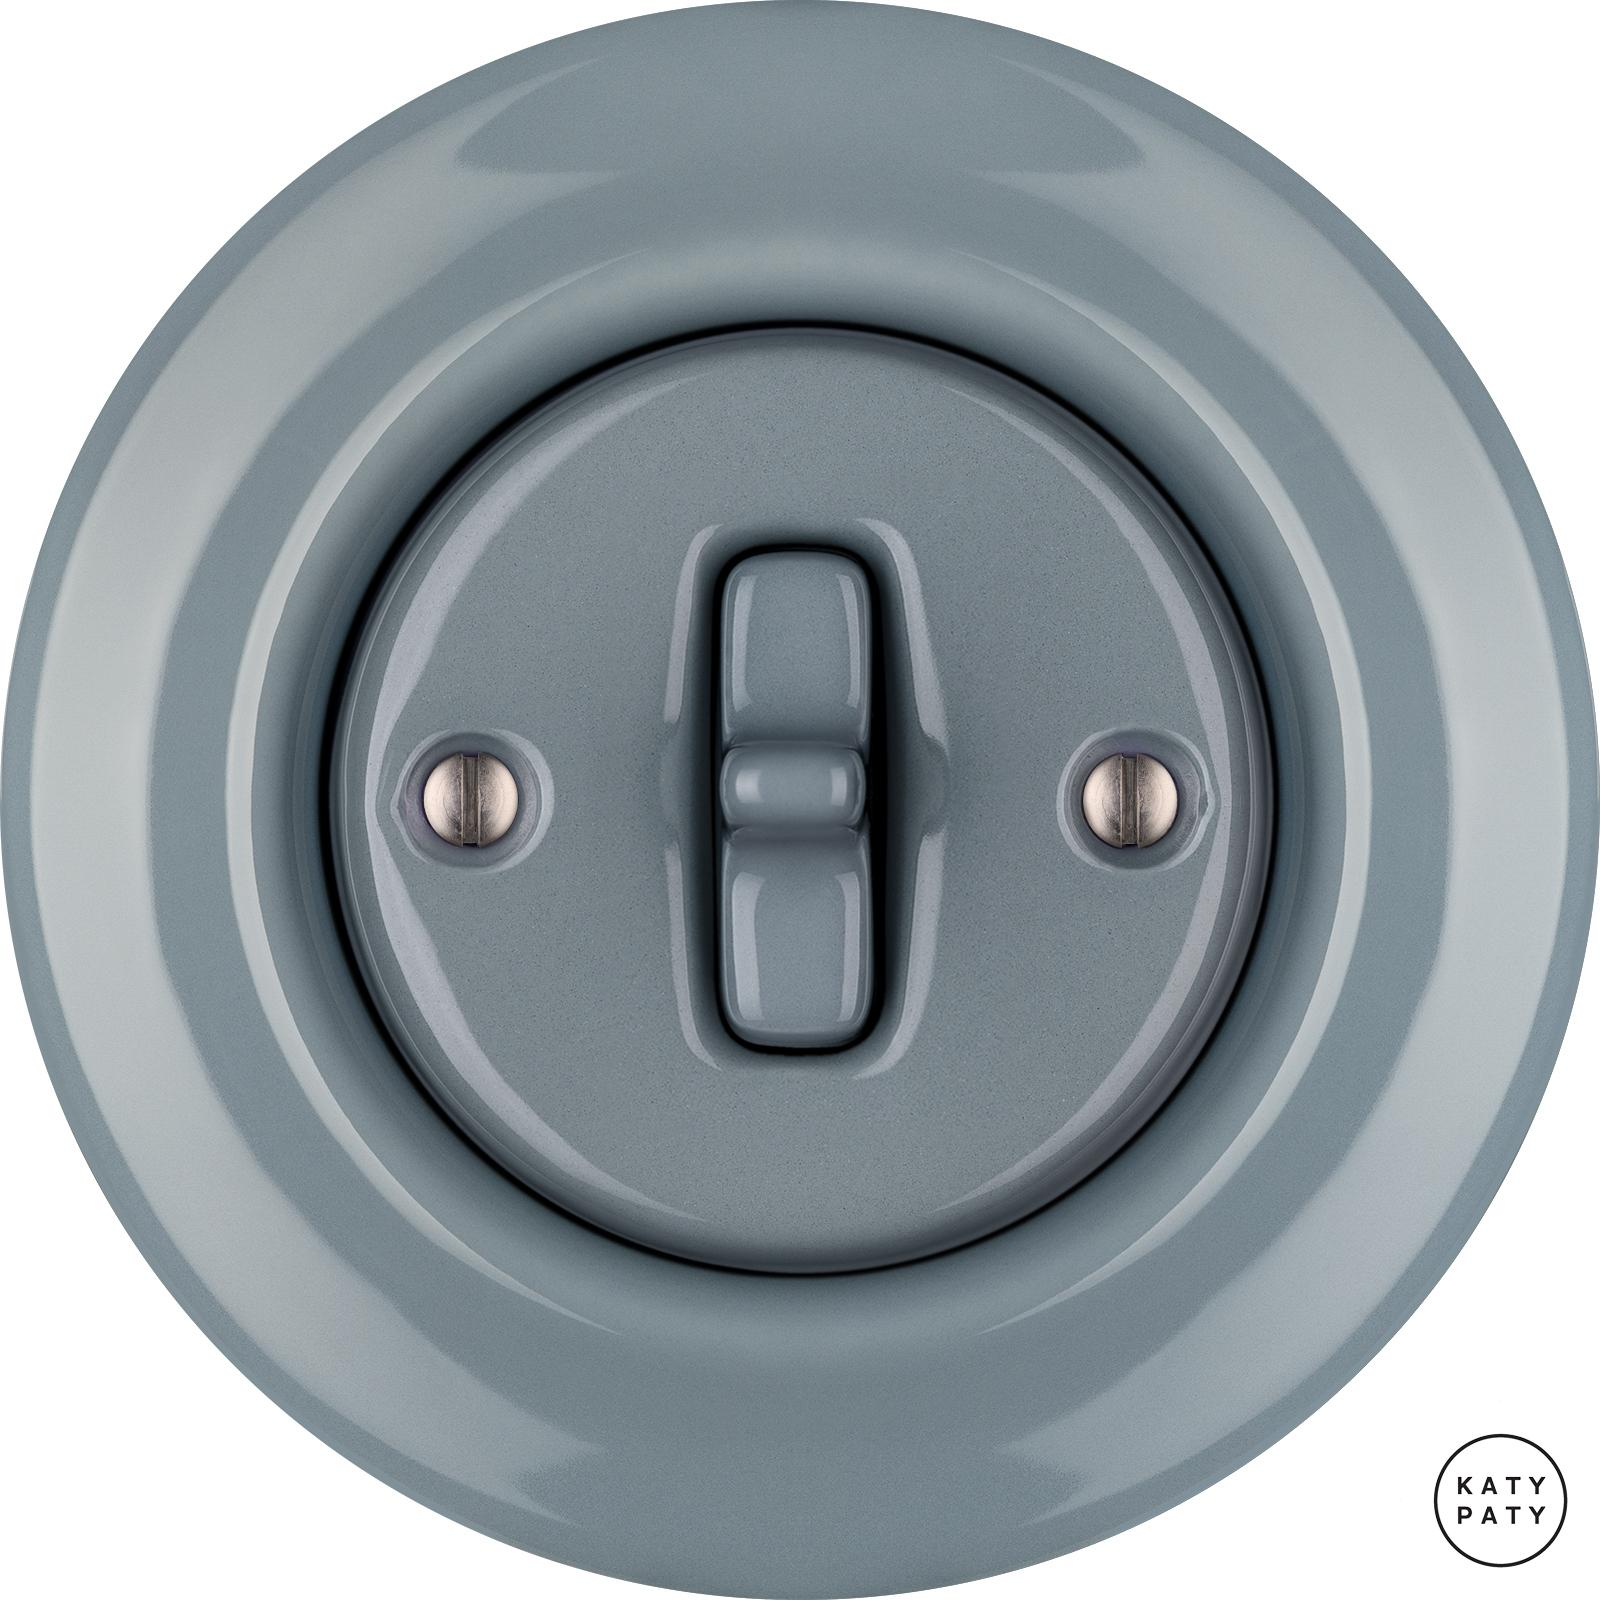 Porcelain toggle switches - 1 gang ()  - LIVOR | Katy Paty